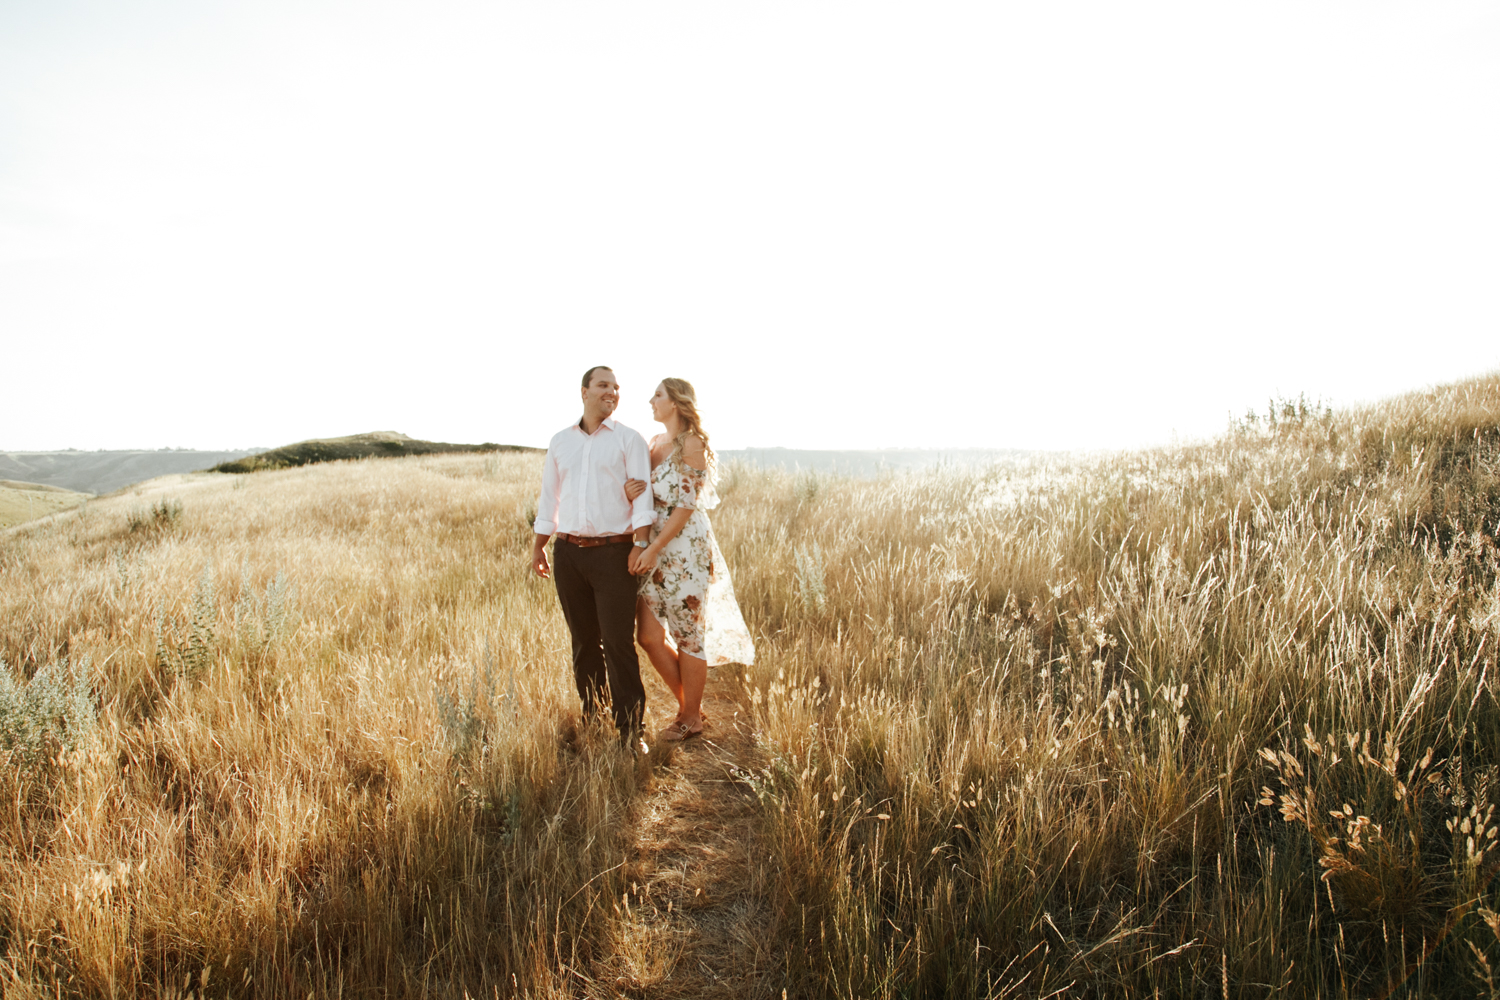 lethbridge-wedding-photographer-love-and-be-loved-photography-katie-kelli-engagement-picture-image-photo-3.jpg